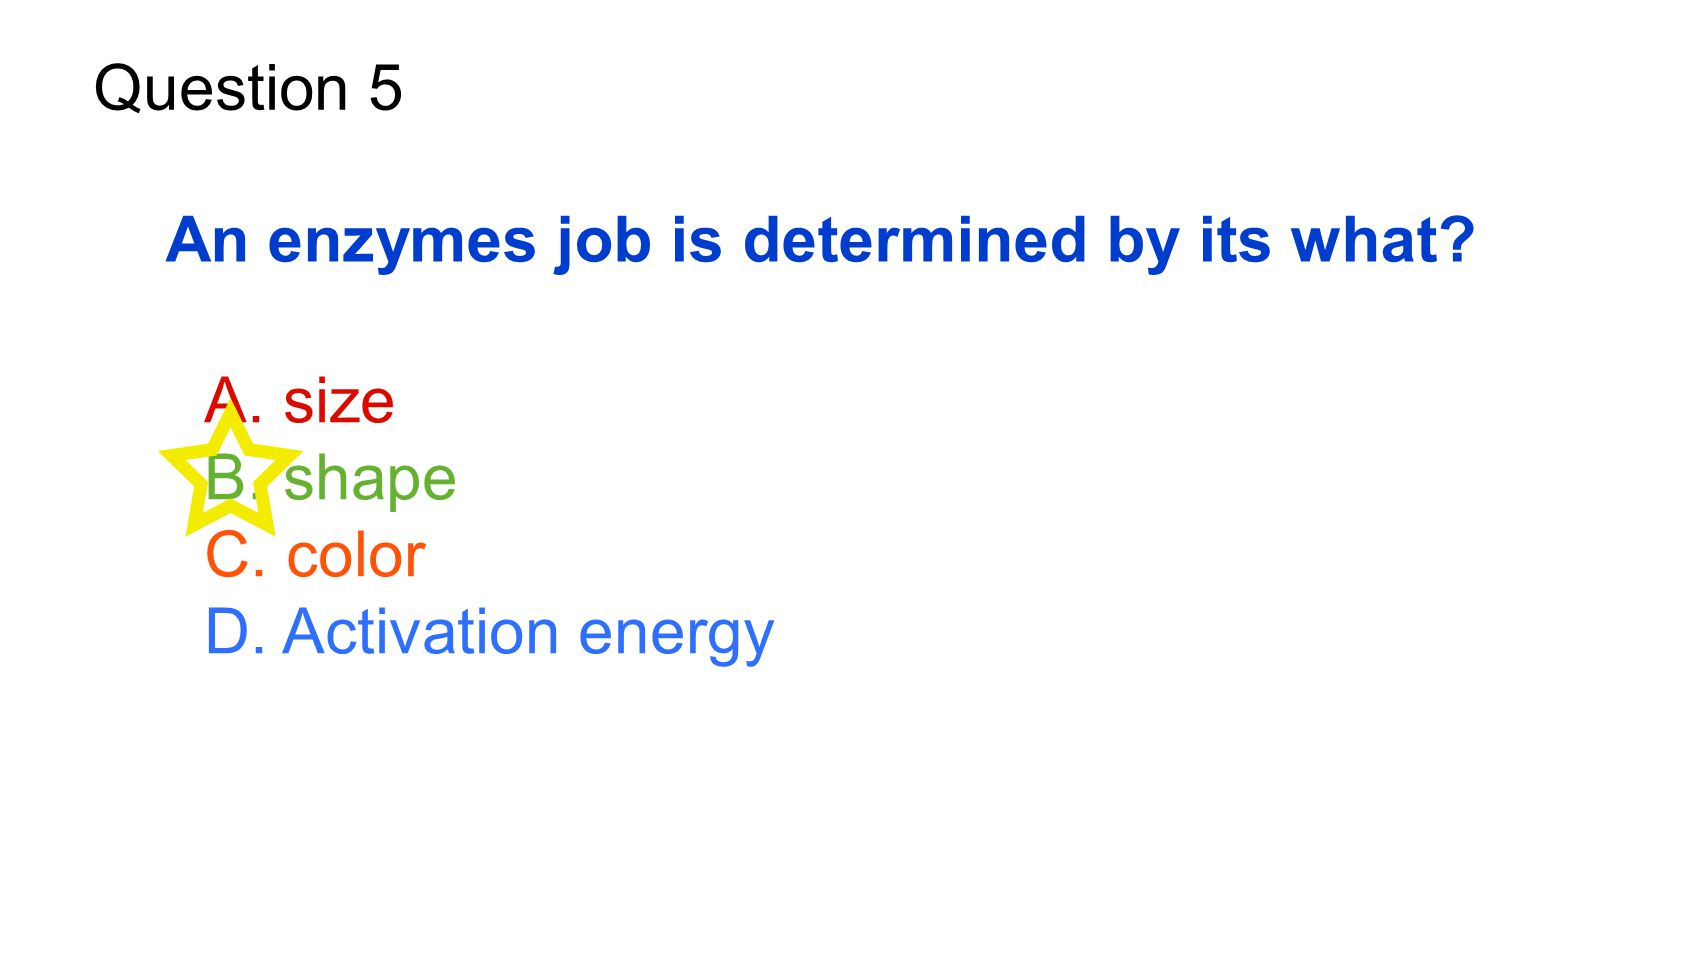 An enzymes job is determined by its what